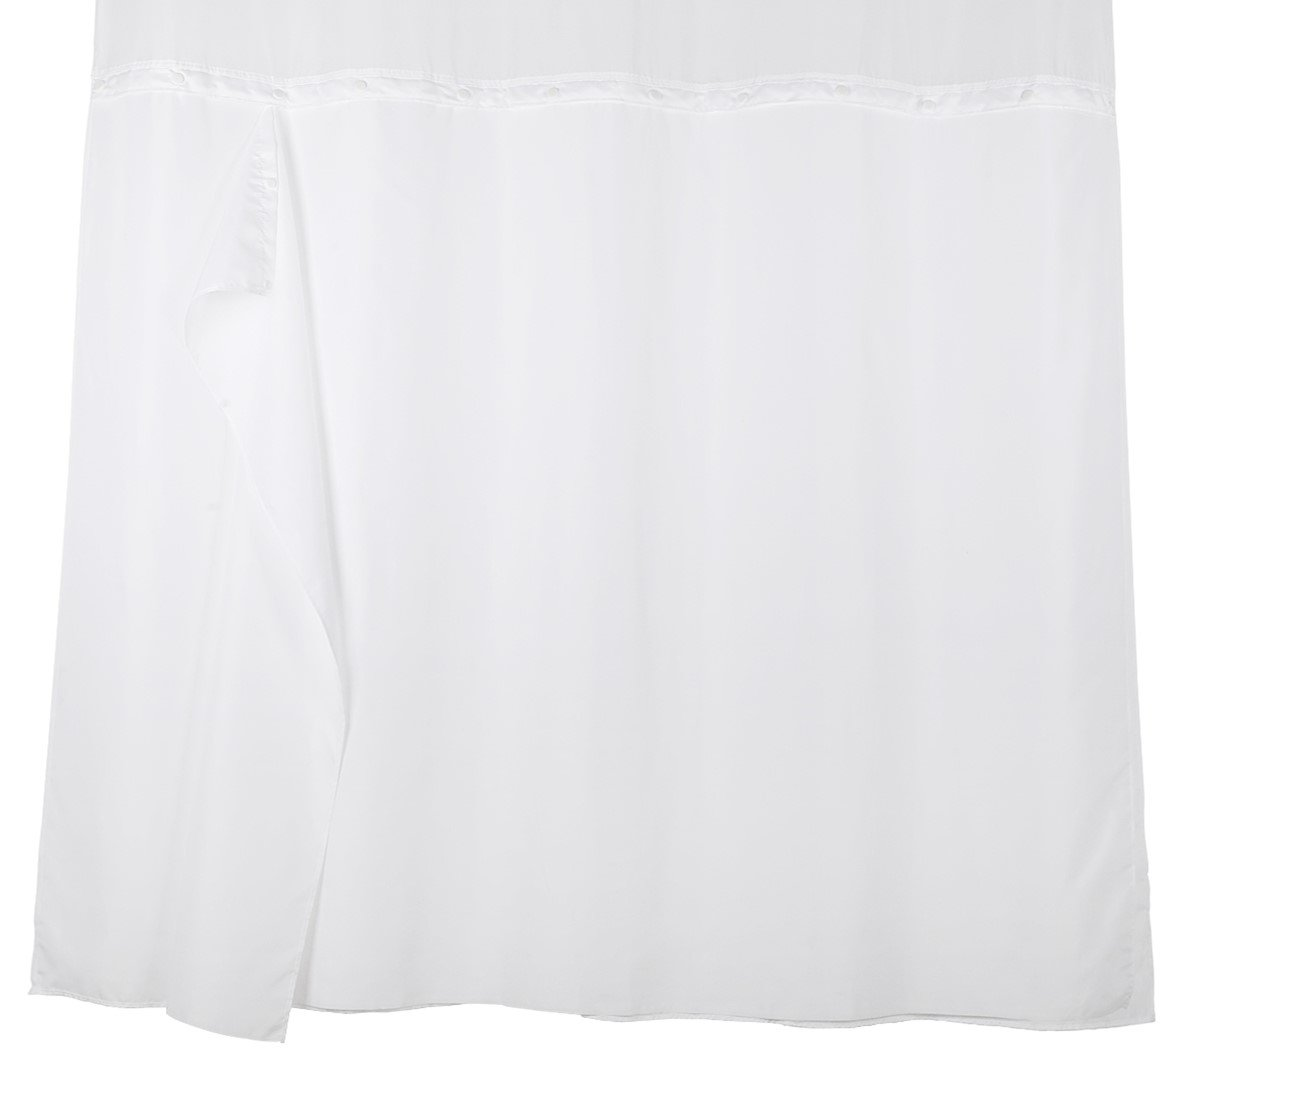 YQN Shower Curtain(No Need Hooks) with Removed Fabric Inner Liner 70.8 x 74 Inch Polyester Thickening Bath Curtain with Light-Filtering Mesh Screen Anti Mildew White Ltd.